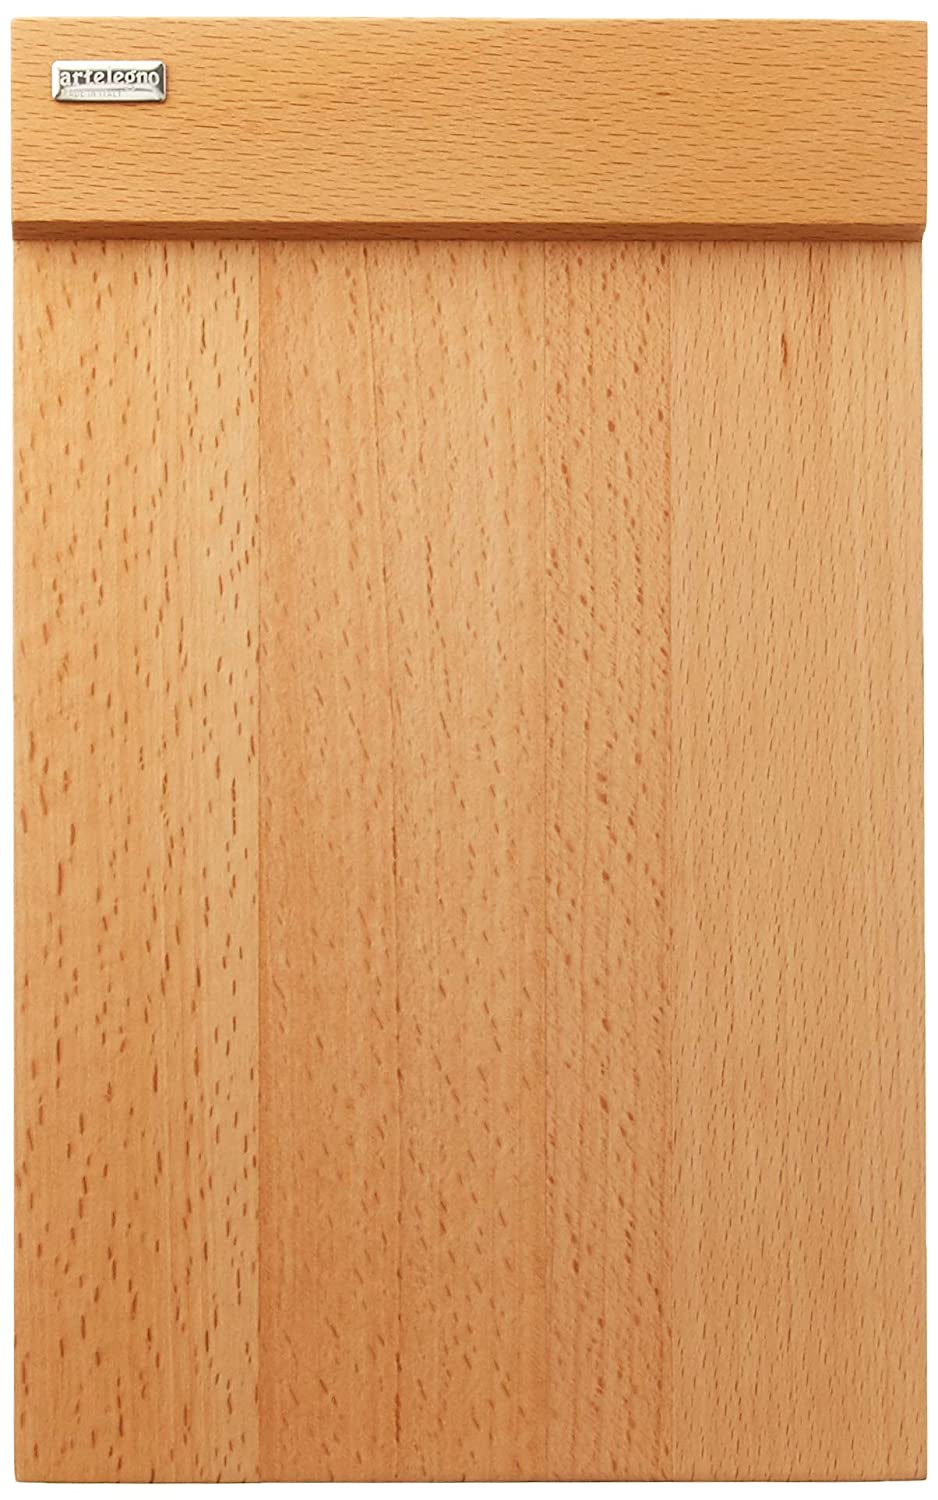 (4 Plates, Natural) - Artelegno Solid Beech Wood Set of 4 Multi-Purpose Plates, Luxurious Italian Firenze Collection by Master Craftsmen, Eco-friendly, Natural Finish 4 Plates ナチュラル B019PR3V3G